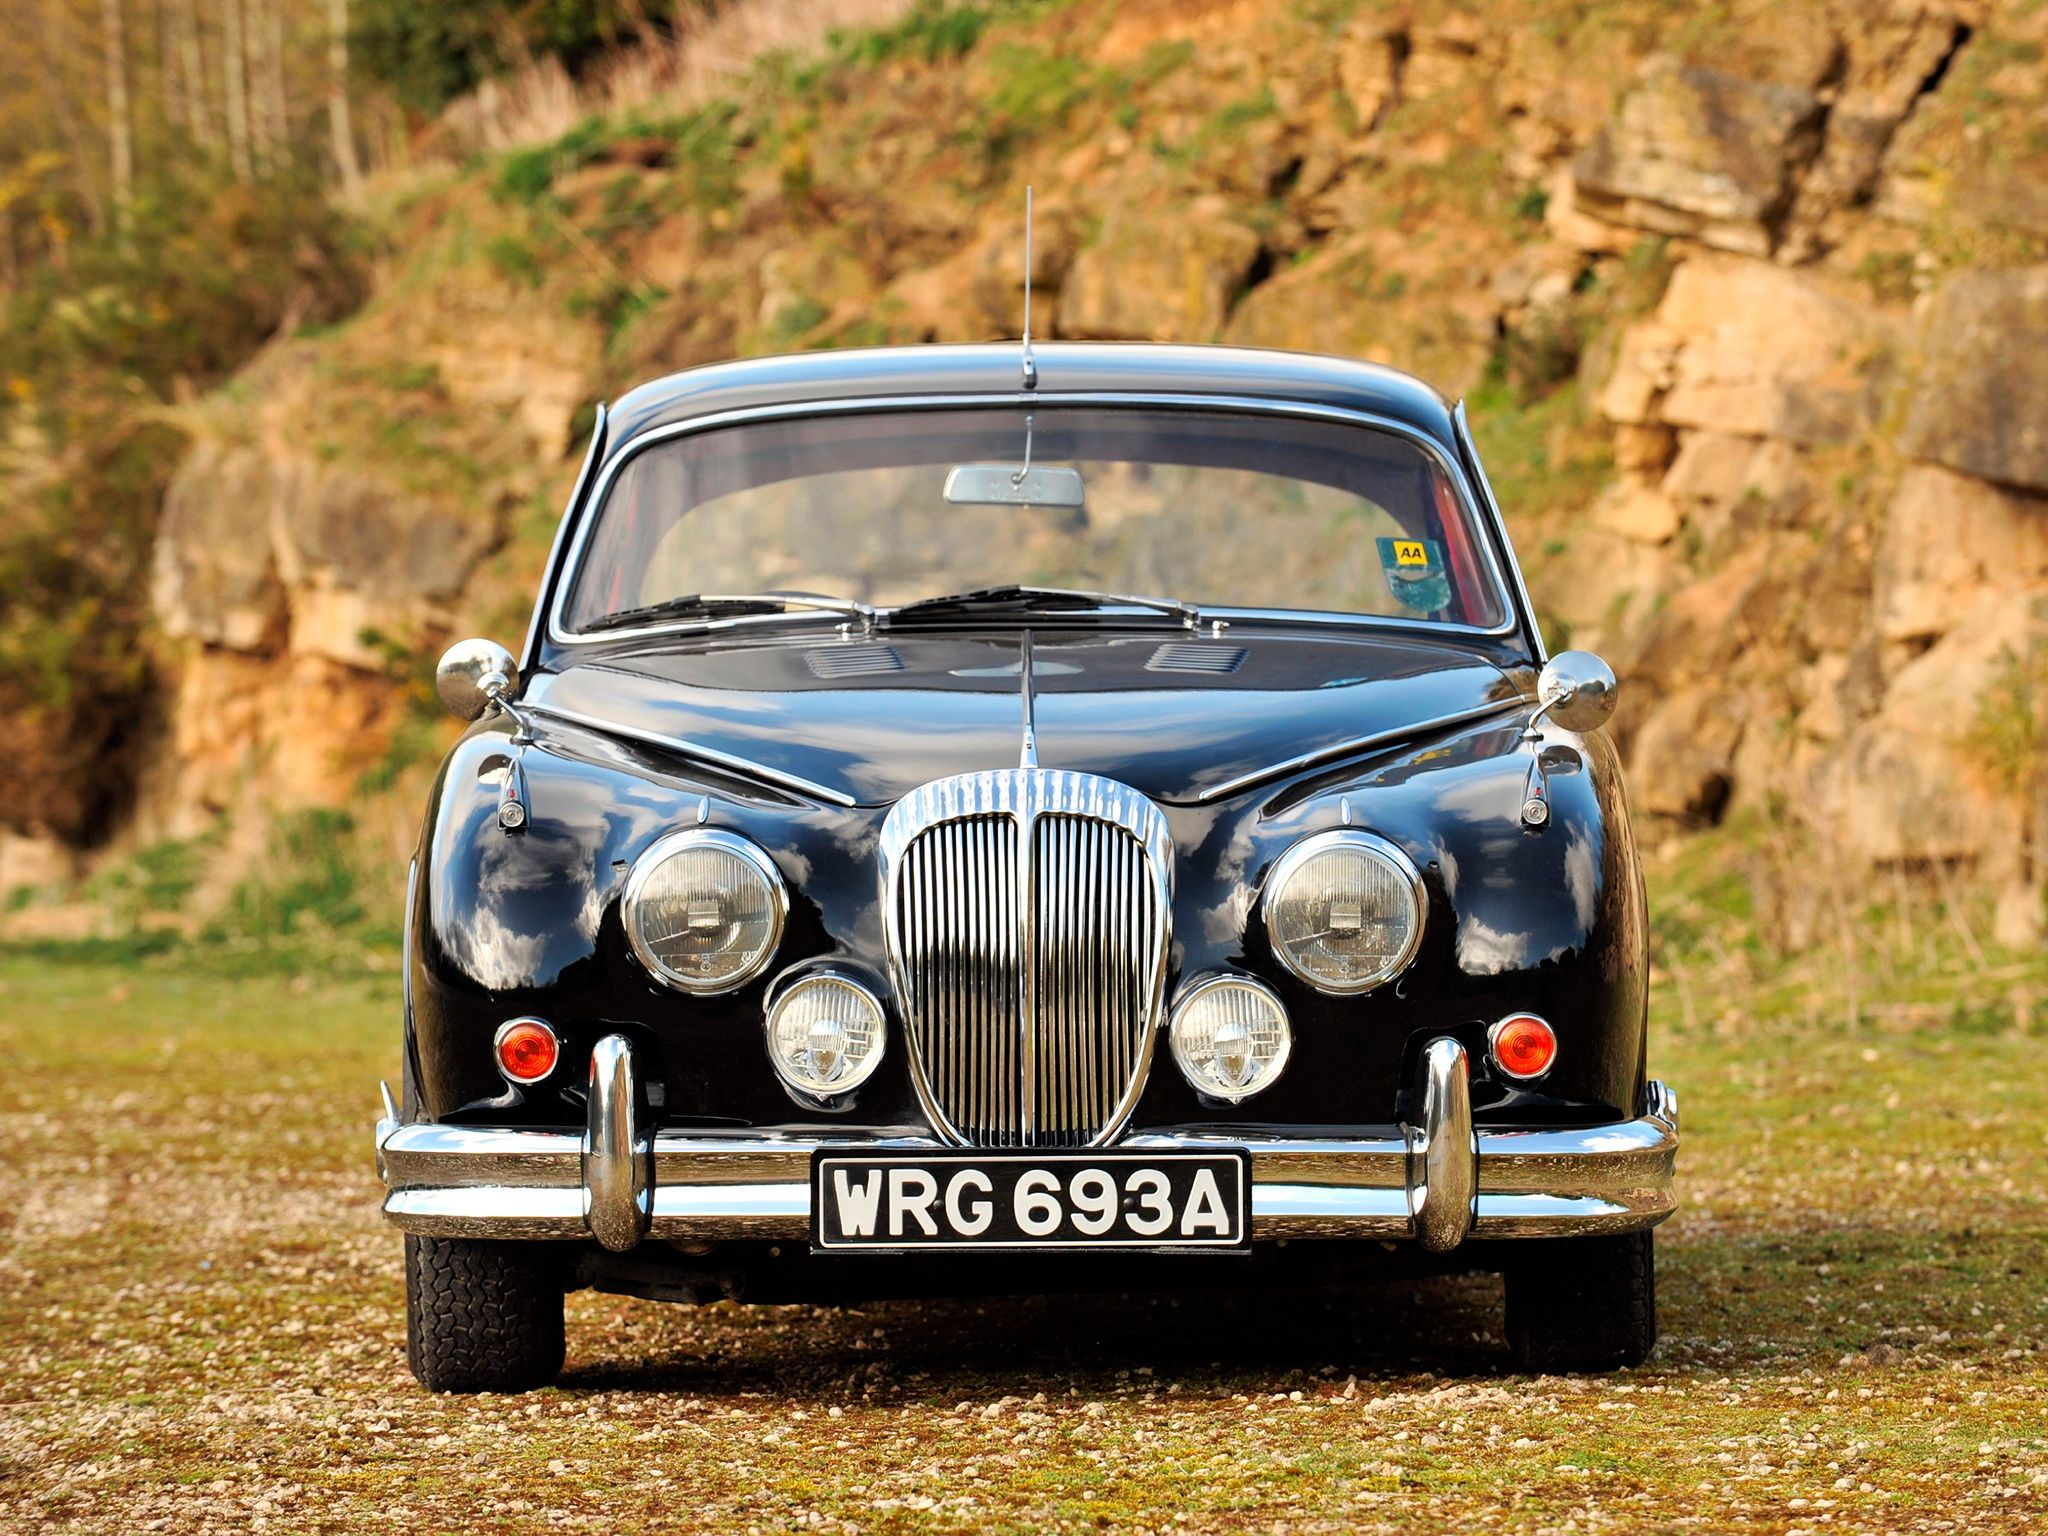 1962 Daimler V8 250 | Cars other | Pinterest | Cars, Jaguar daimler ...